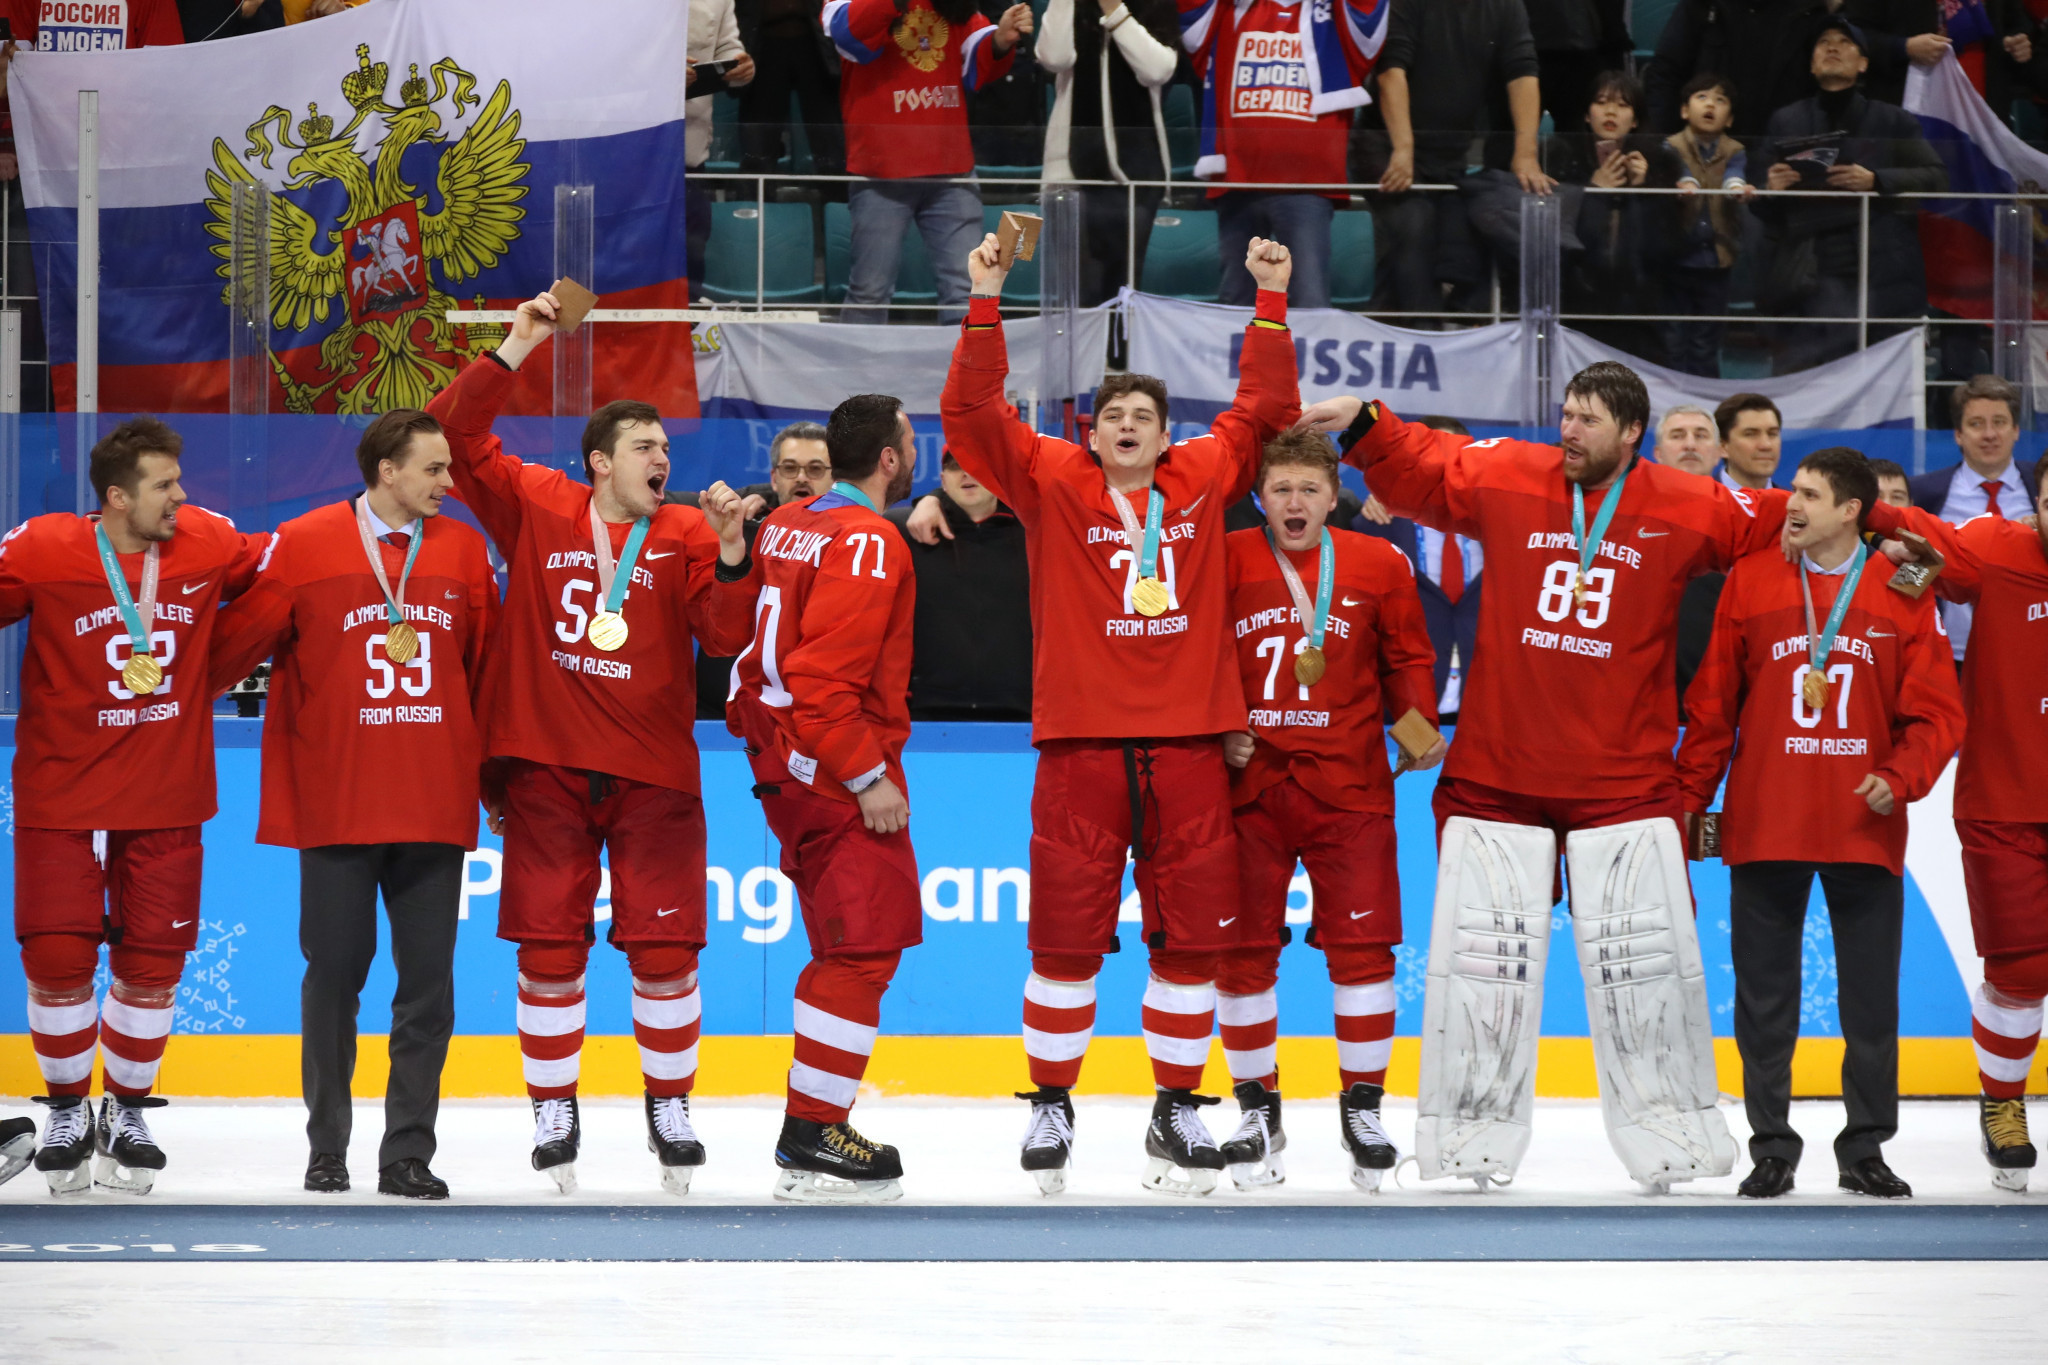 Russian head coach Alexei Kudashov has been tasked with winning the gold medal at next year's International Ice Hockey Federation World Ice Hockey Championships in Switzerland ©Getty Images